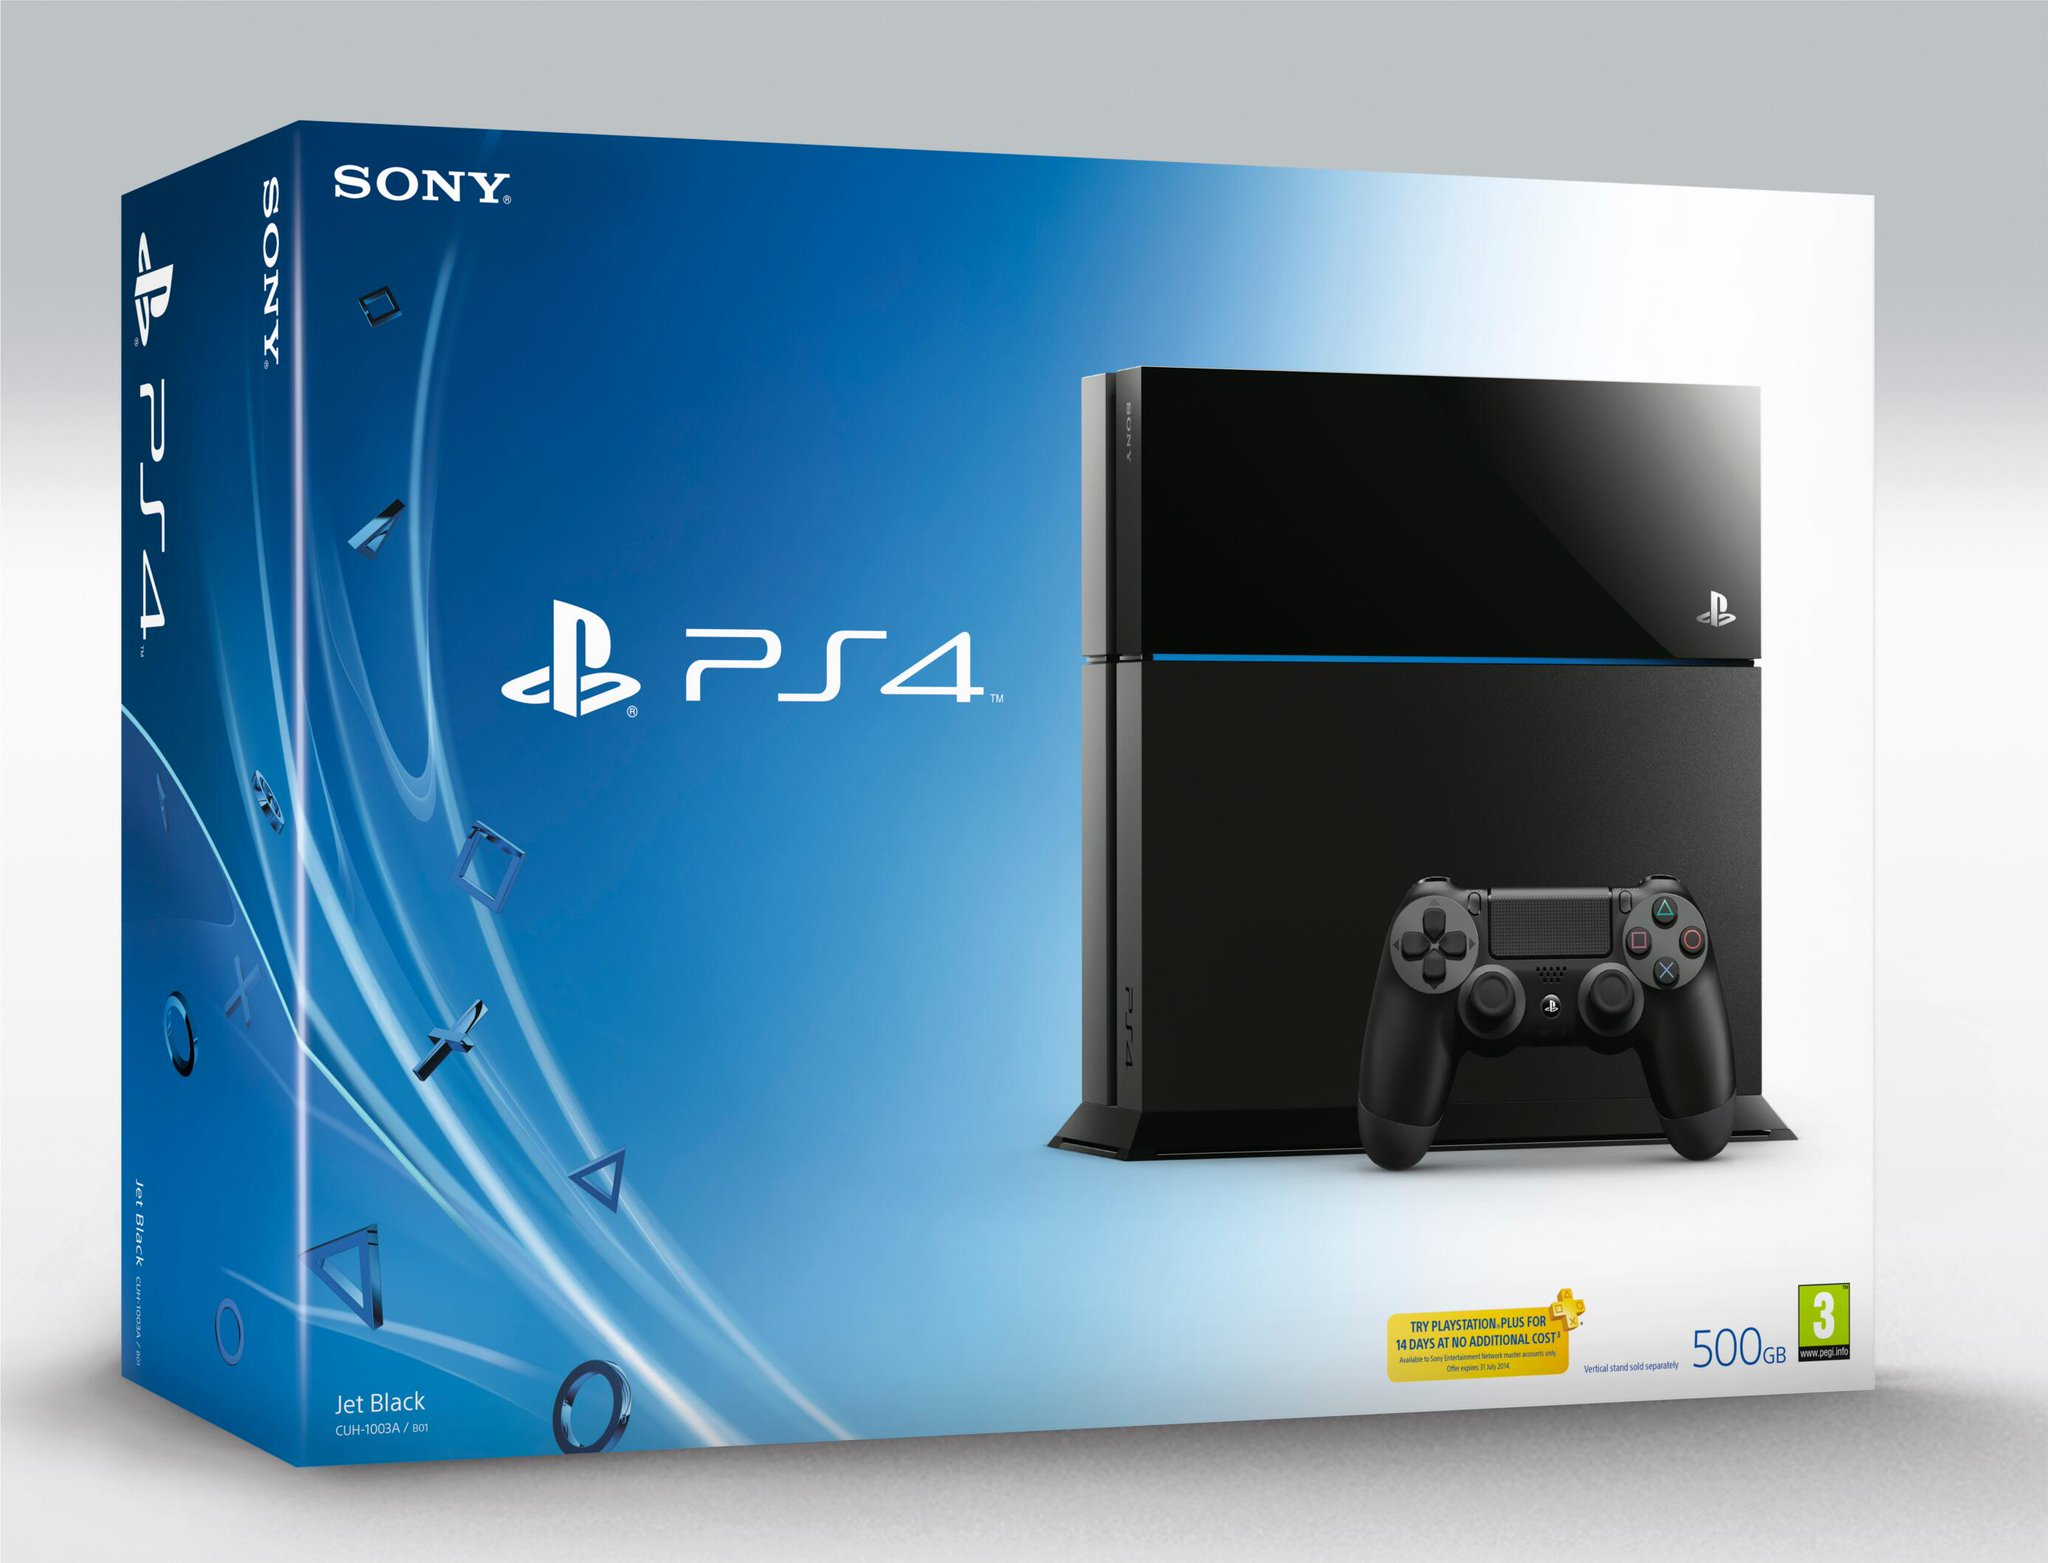 PS4 And Accessory Retail Boxes Revealed